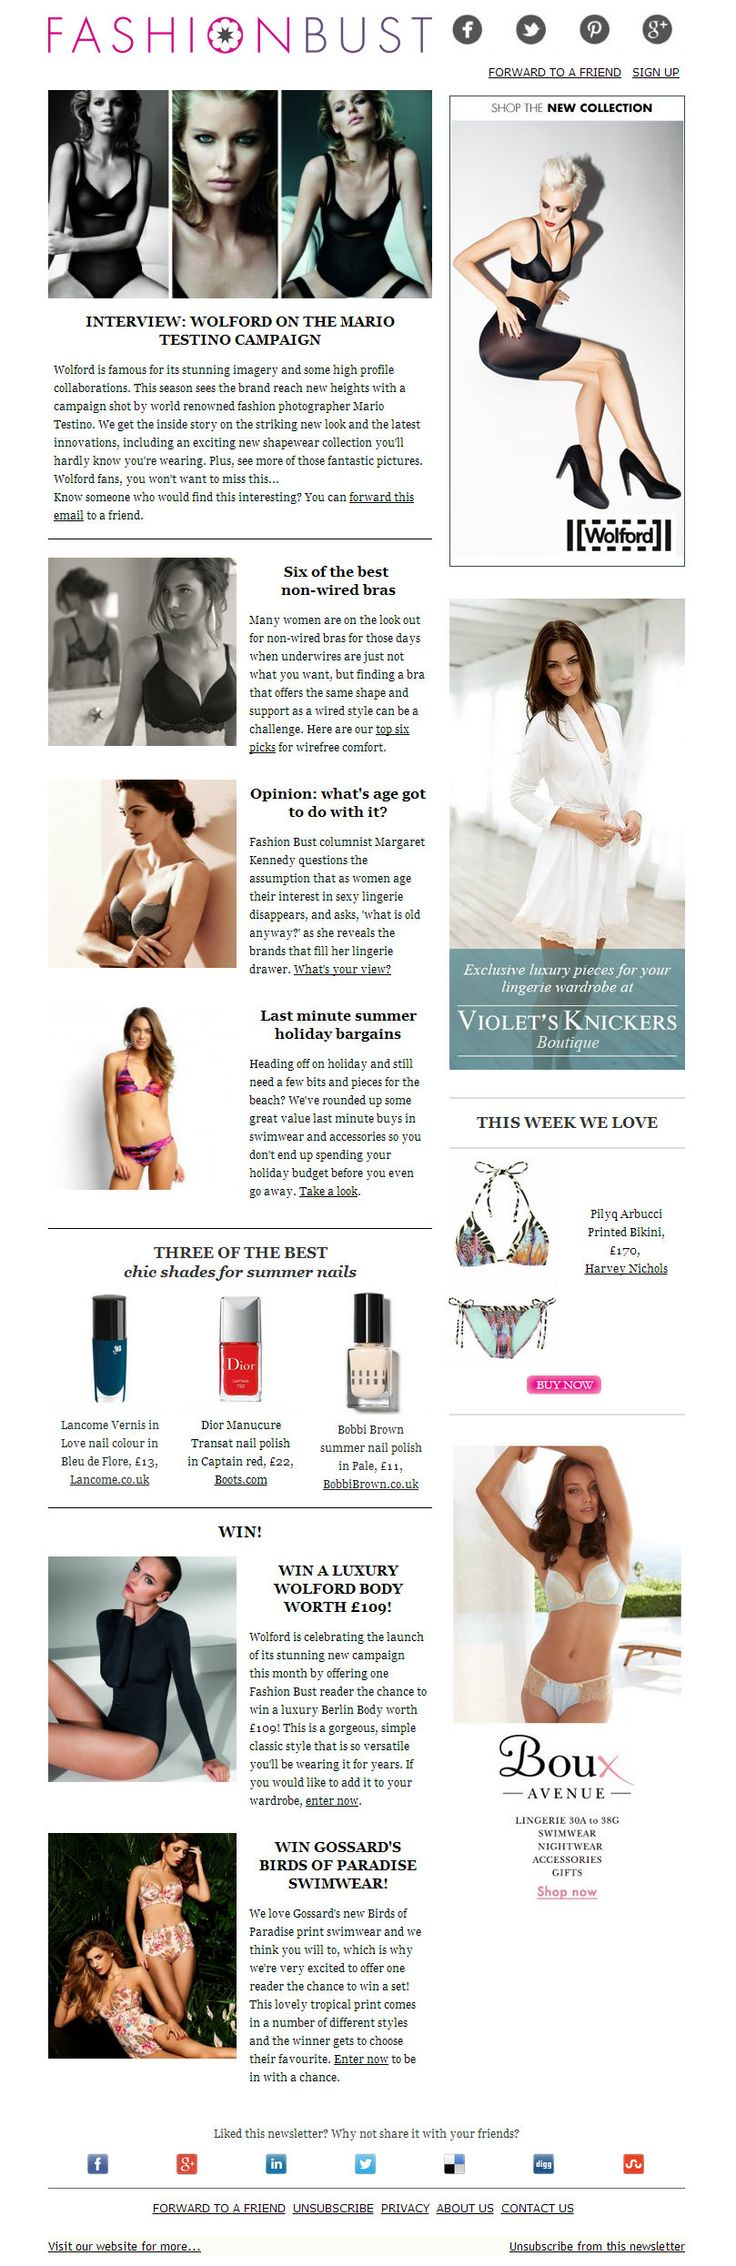 The story of the Mario Testino shoot for Wolford; six of the best non-wired bras; age and lingerie; last minute holiday bargains: http://fashionbust-news.com/1ORR-2NO9D-589FATOWAC/cr.aspx?v=1